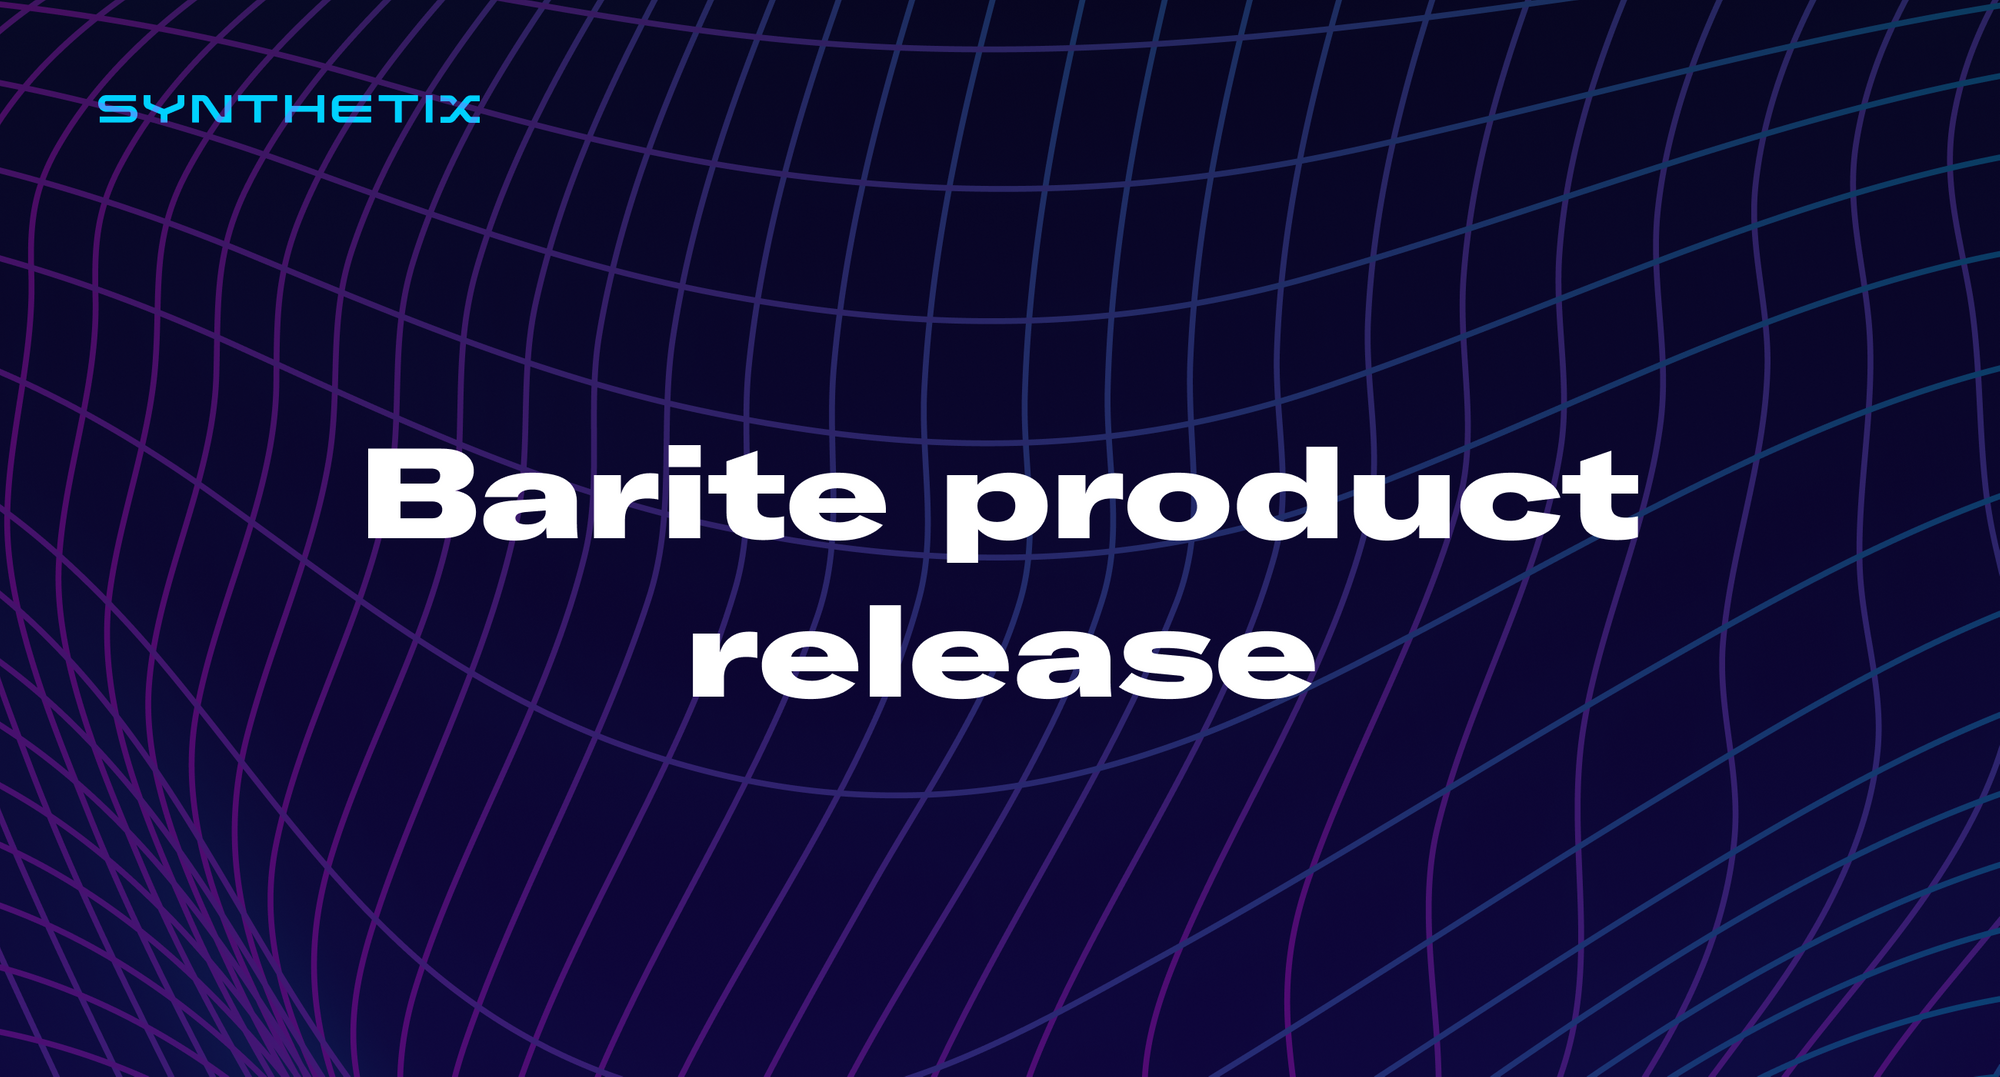 Barite product release